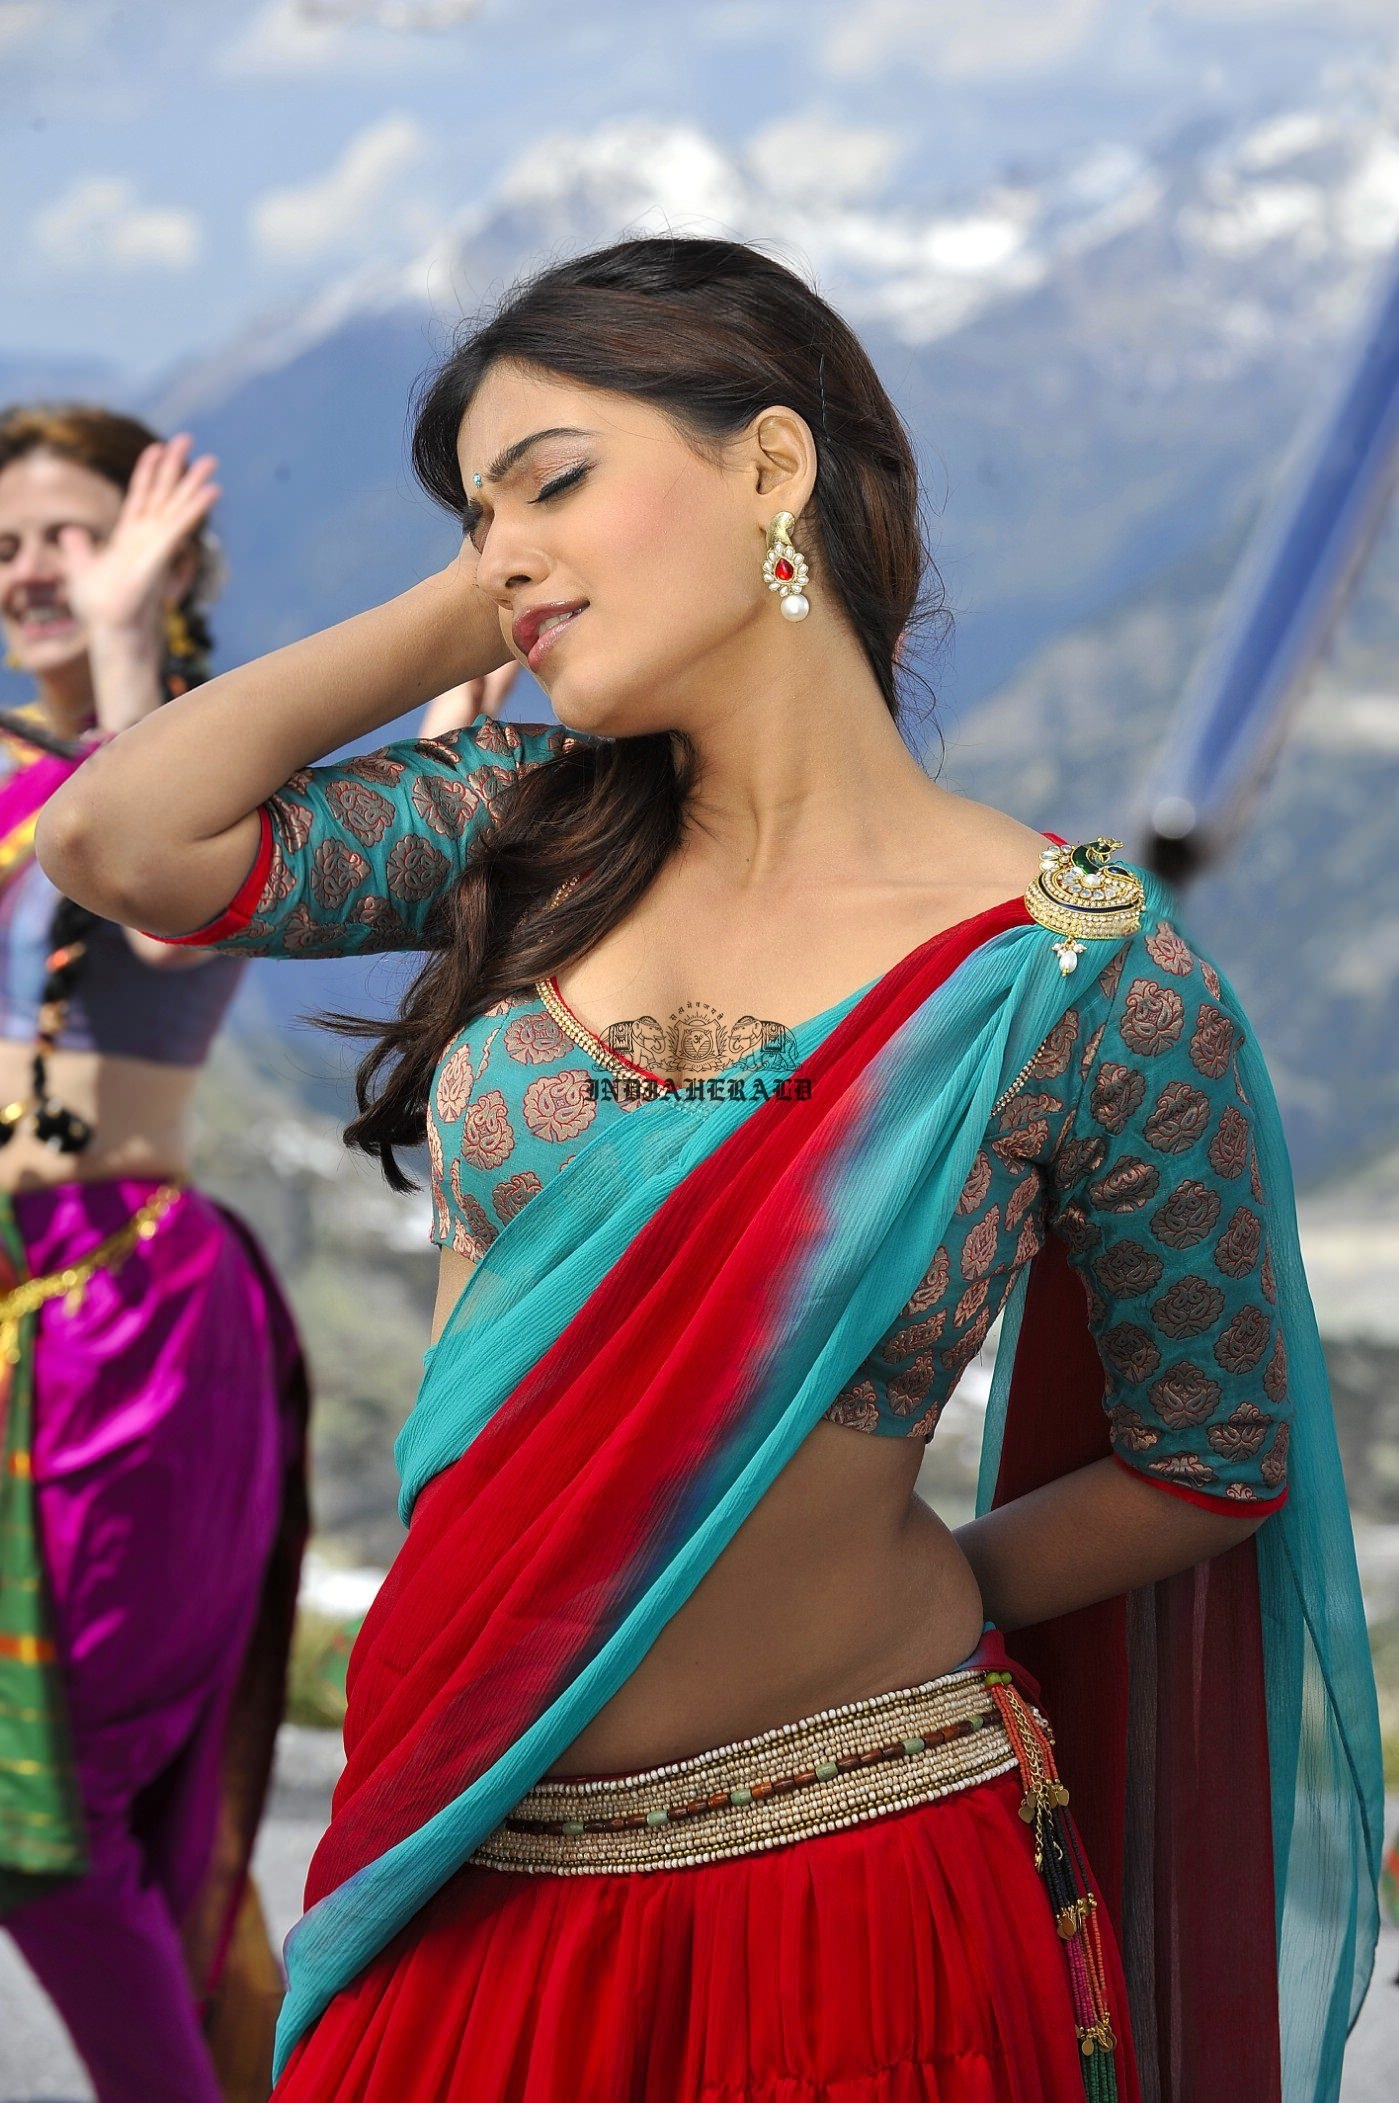 Samantha shows horny expressions on face and exposes her navel and hip curves Set 2